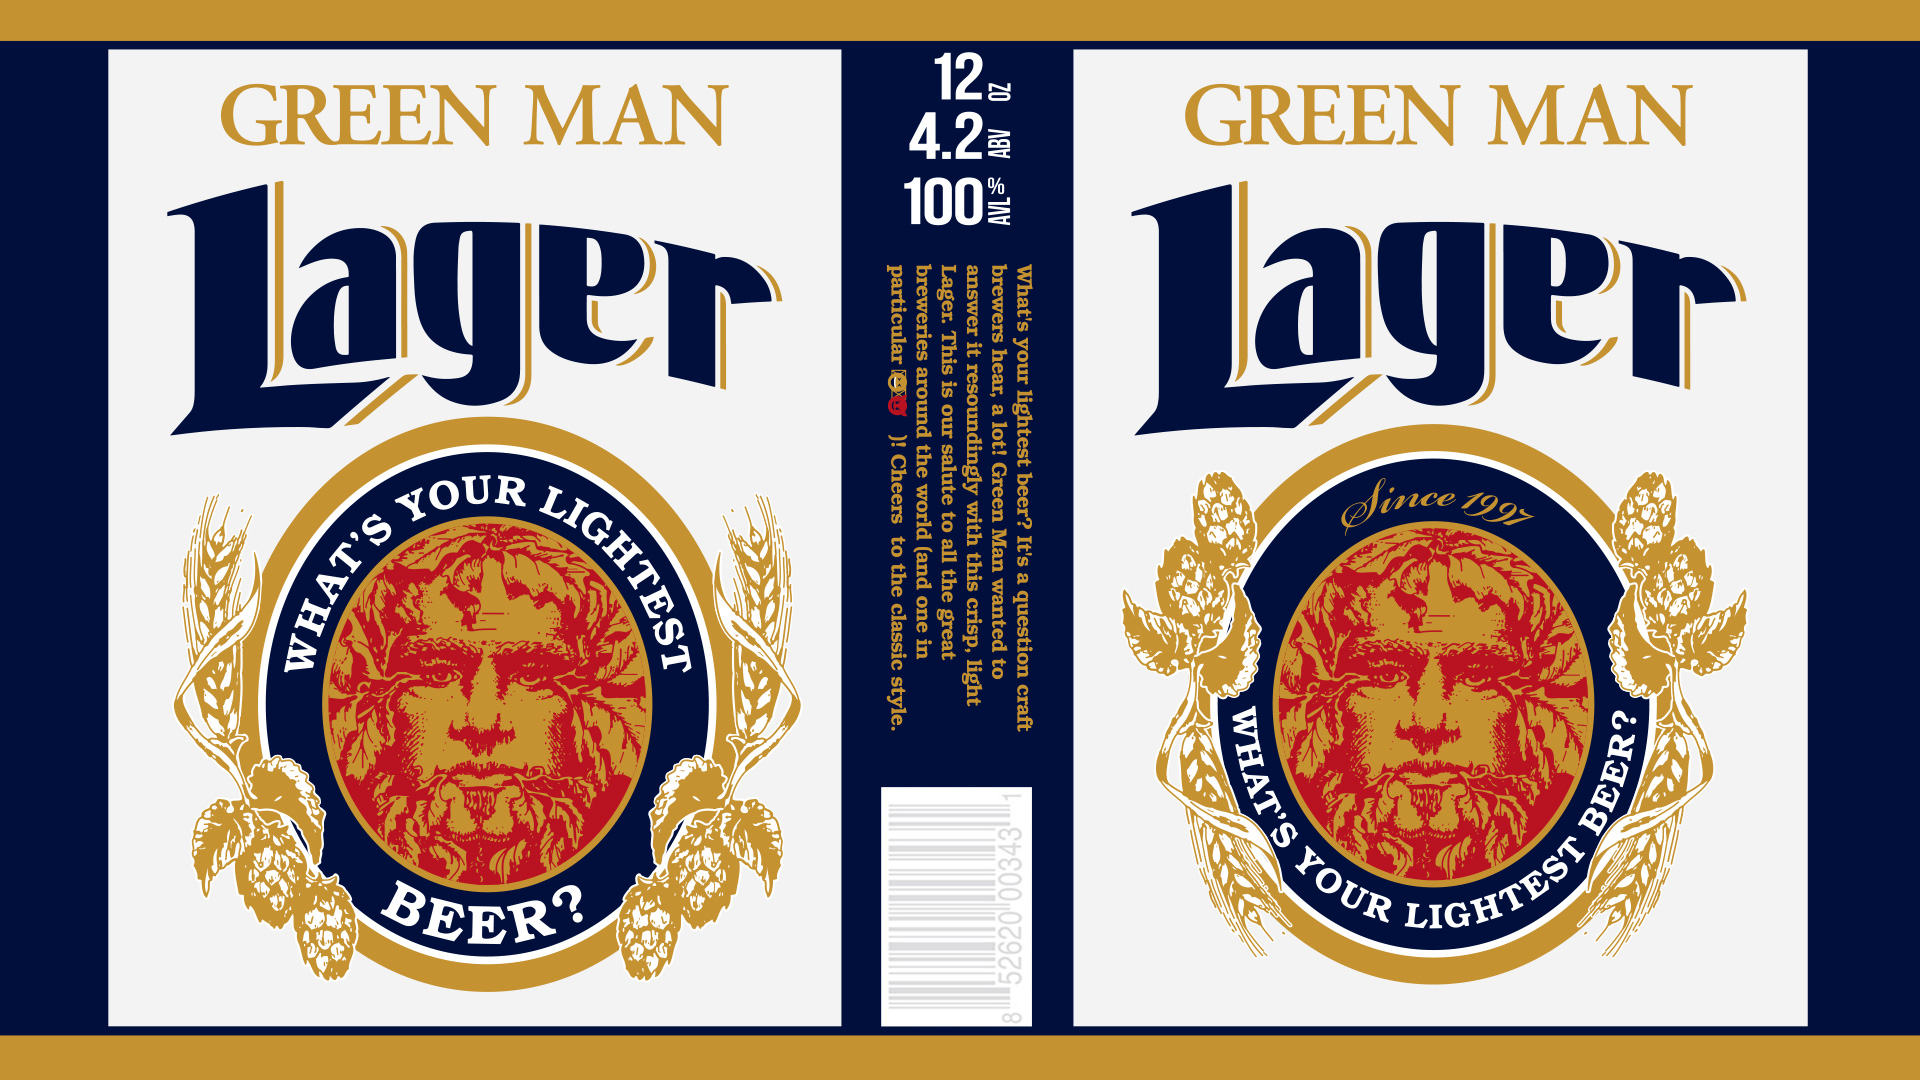 Beer Label Design - Green Man Brewery